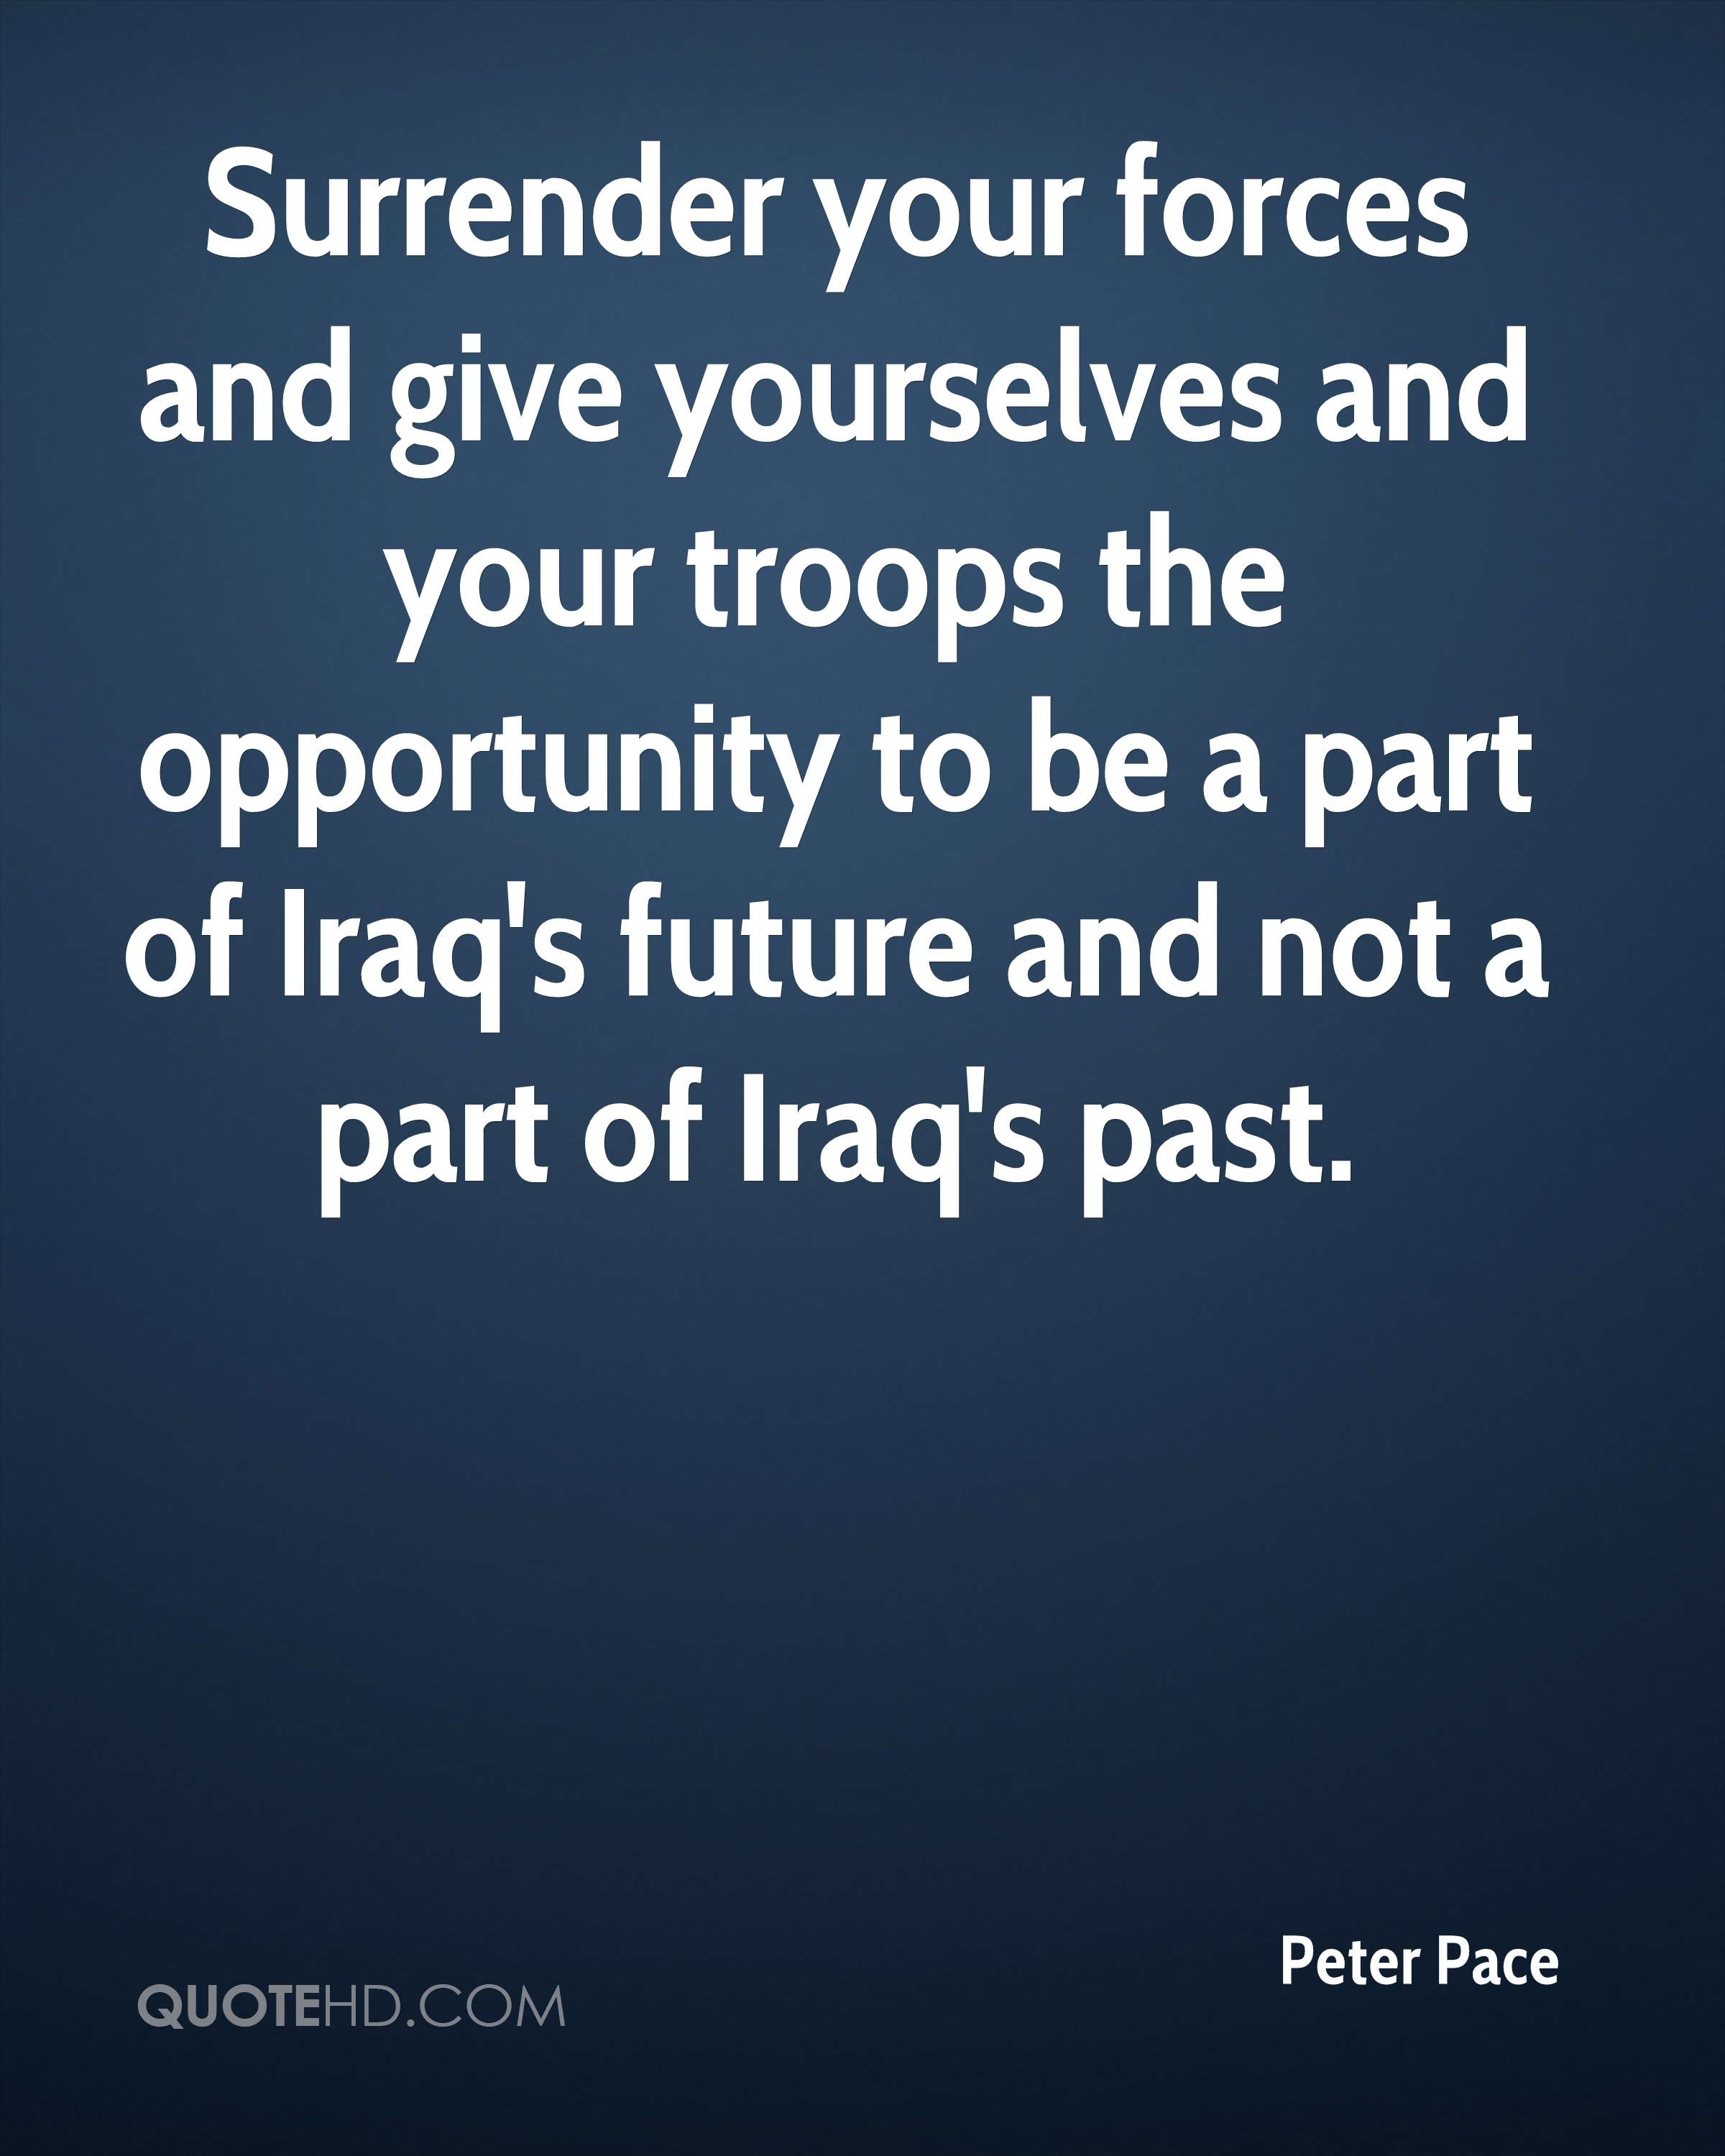 Surrender your forces and give yourselves and your troops the opportunity to be a part of Iraq's future and not a part of Iraq's past.